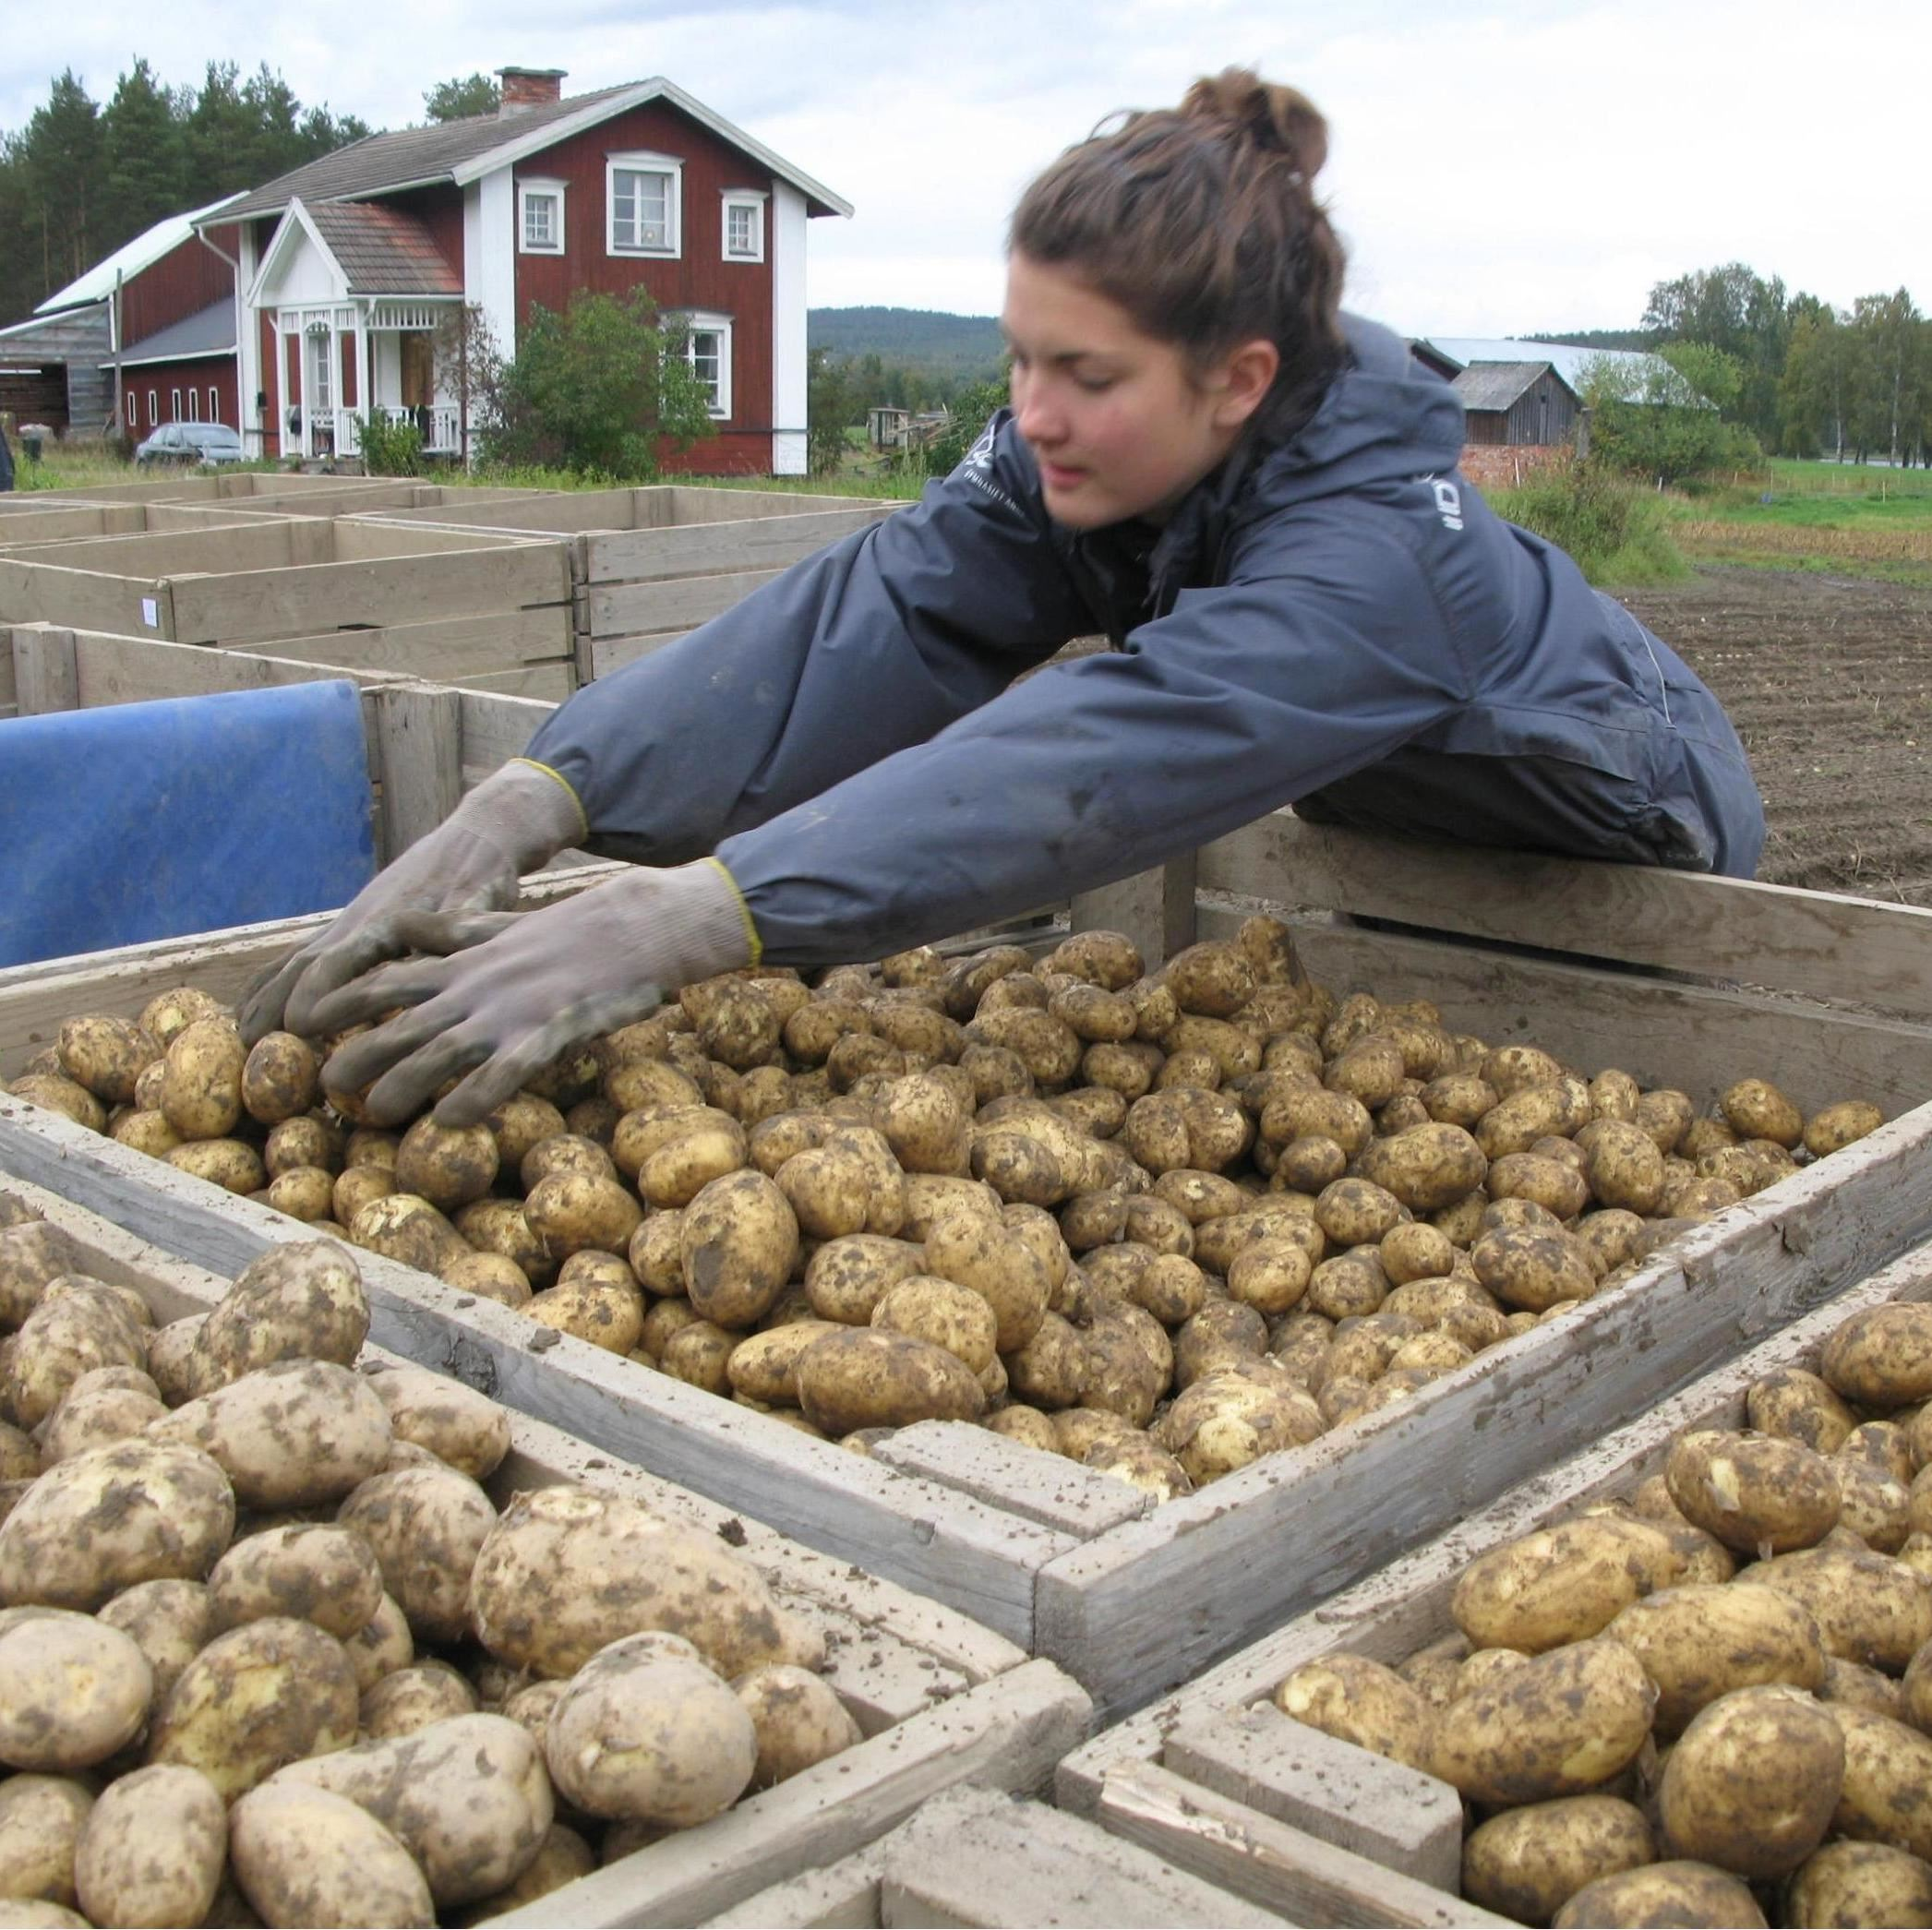 Foto: Mark Sadan, The potato cultivation in Skadon